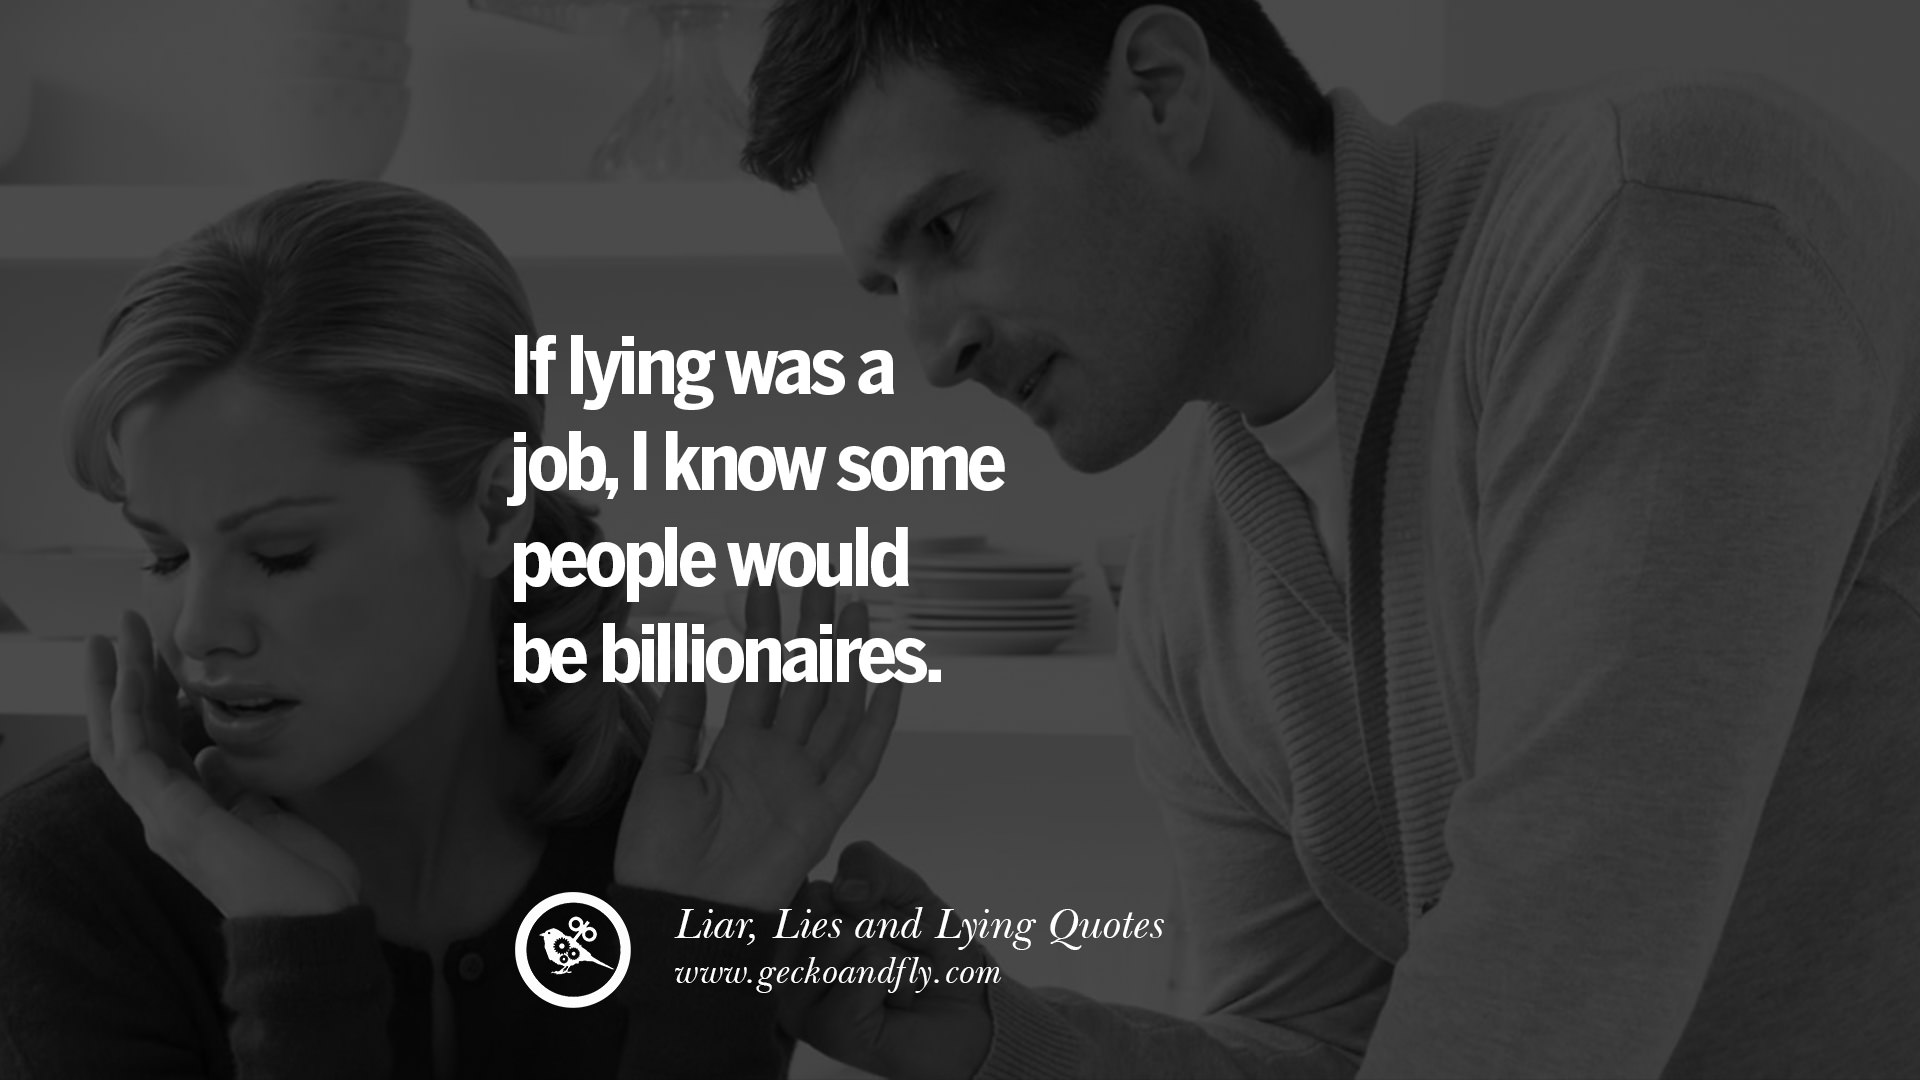 60 quotes about liar lies and lying boyfriend in a